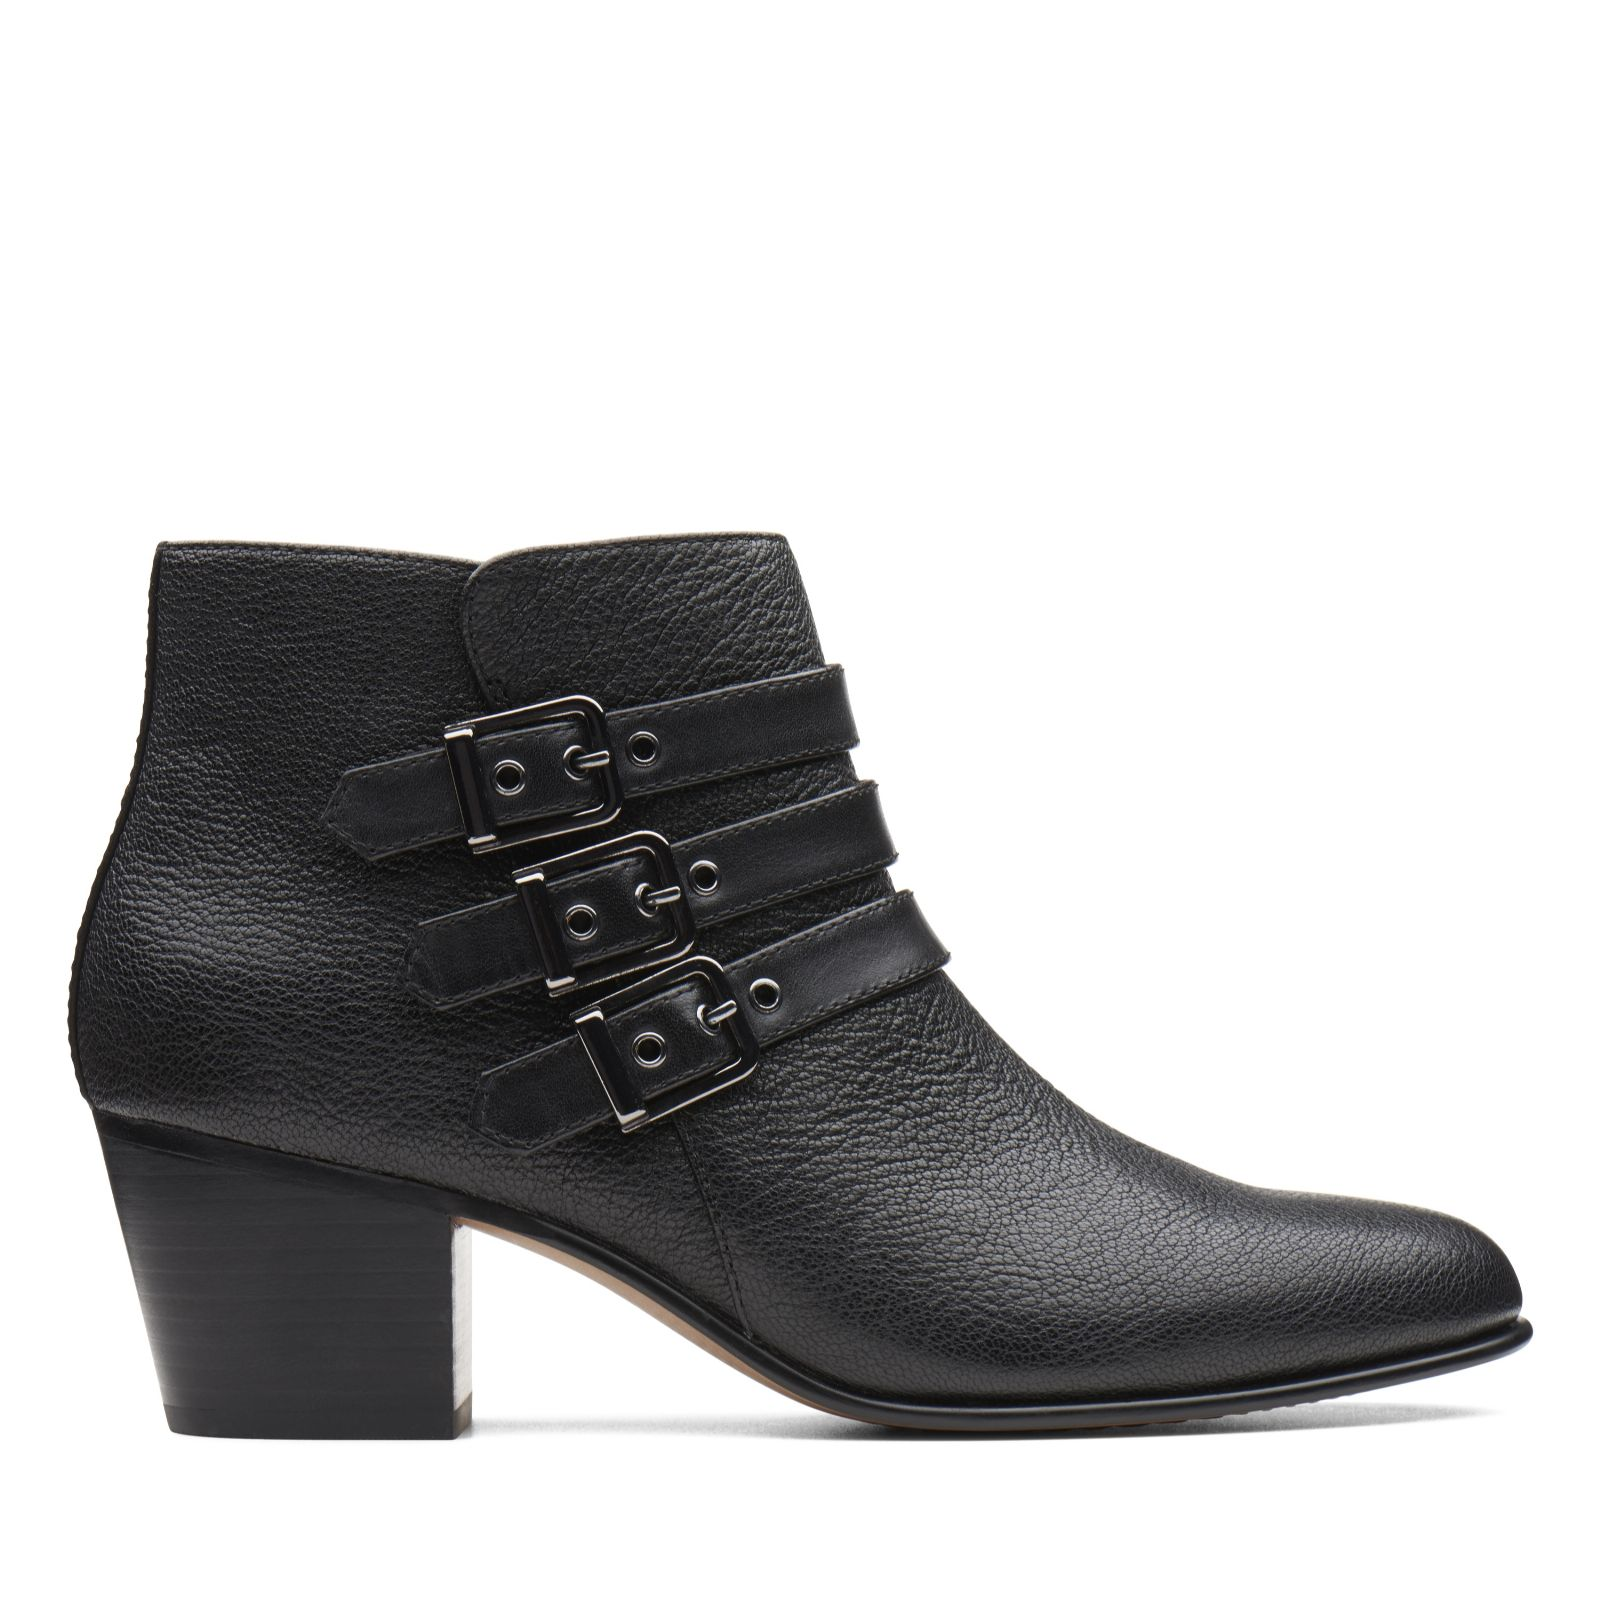 559ea892b44a Clarks Maypearl Rayna Buckle Ankle Boot Standard Fit - QVC UK